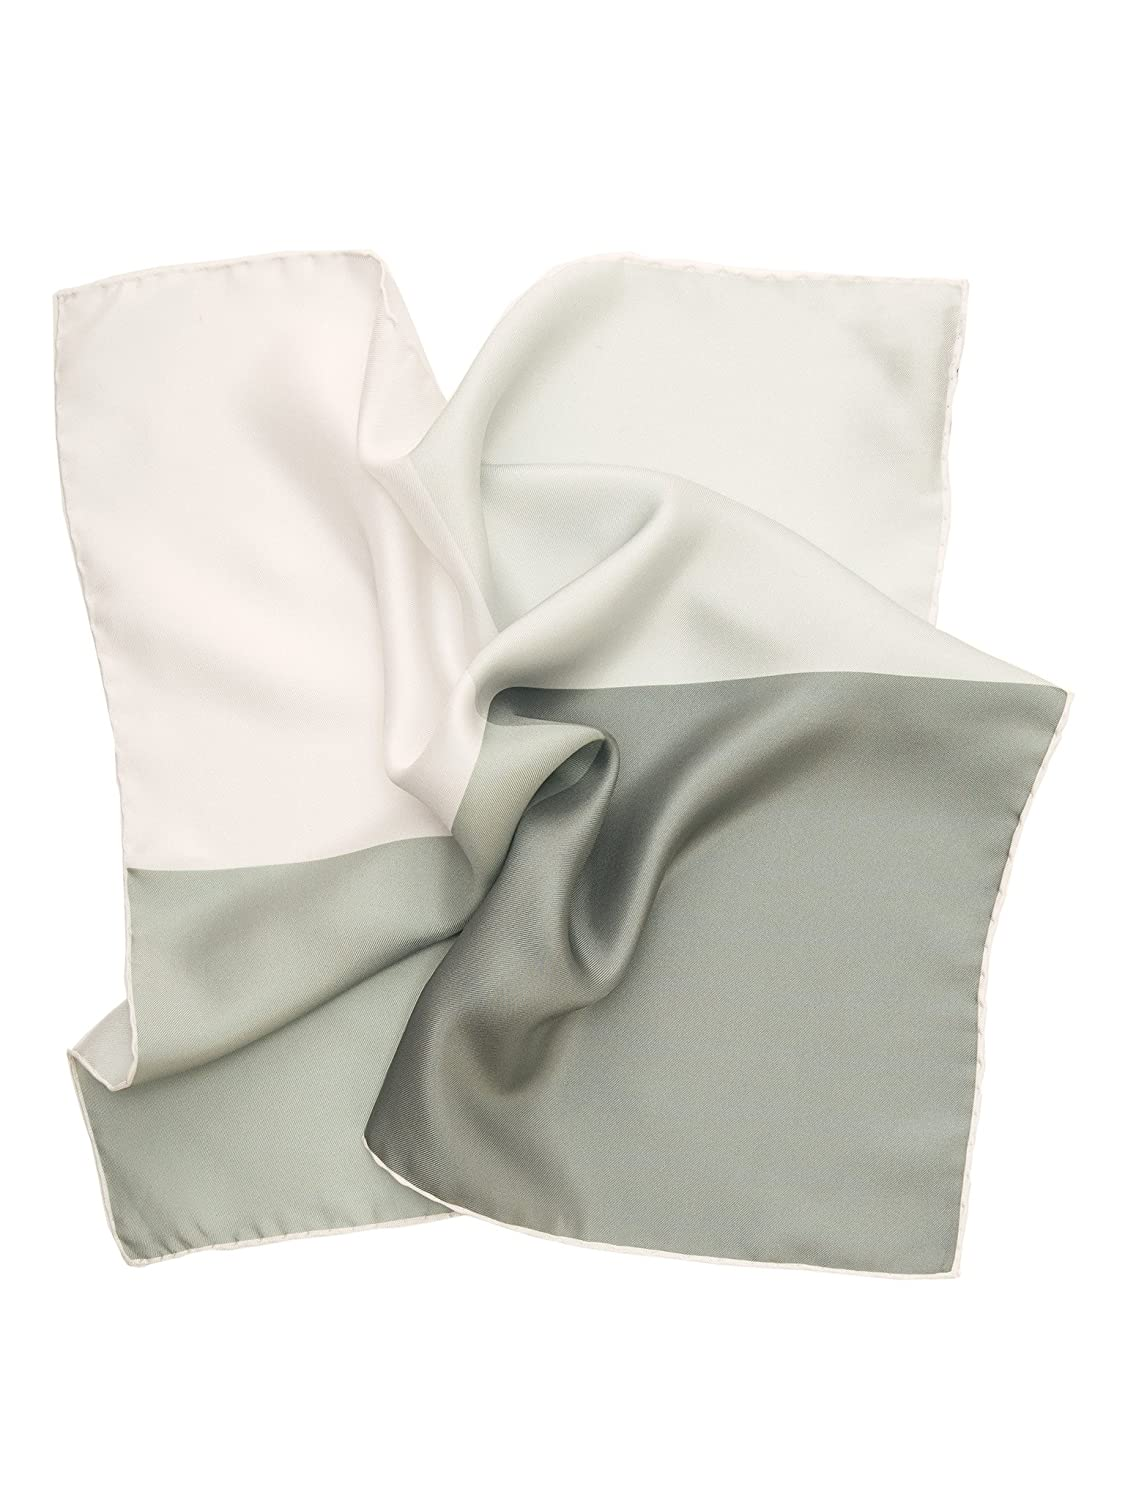 Elizabetta Mens Large Italian Pocket Square Made in Italy Solid White Hand Sewn Hems POK225-AB 16